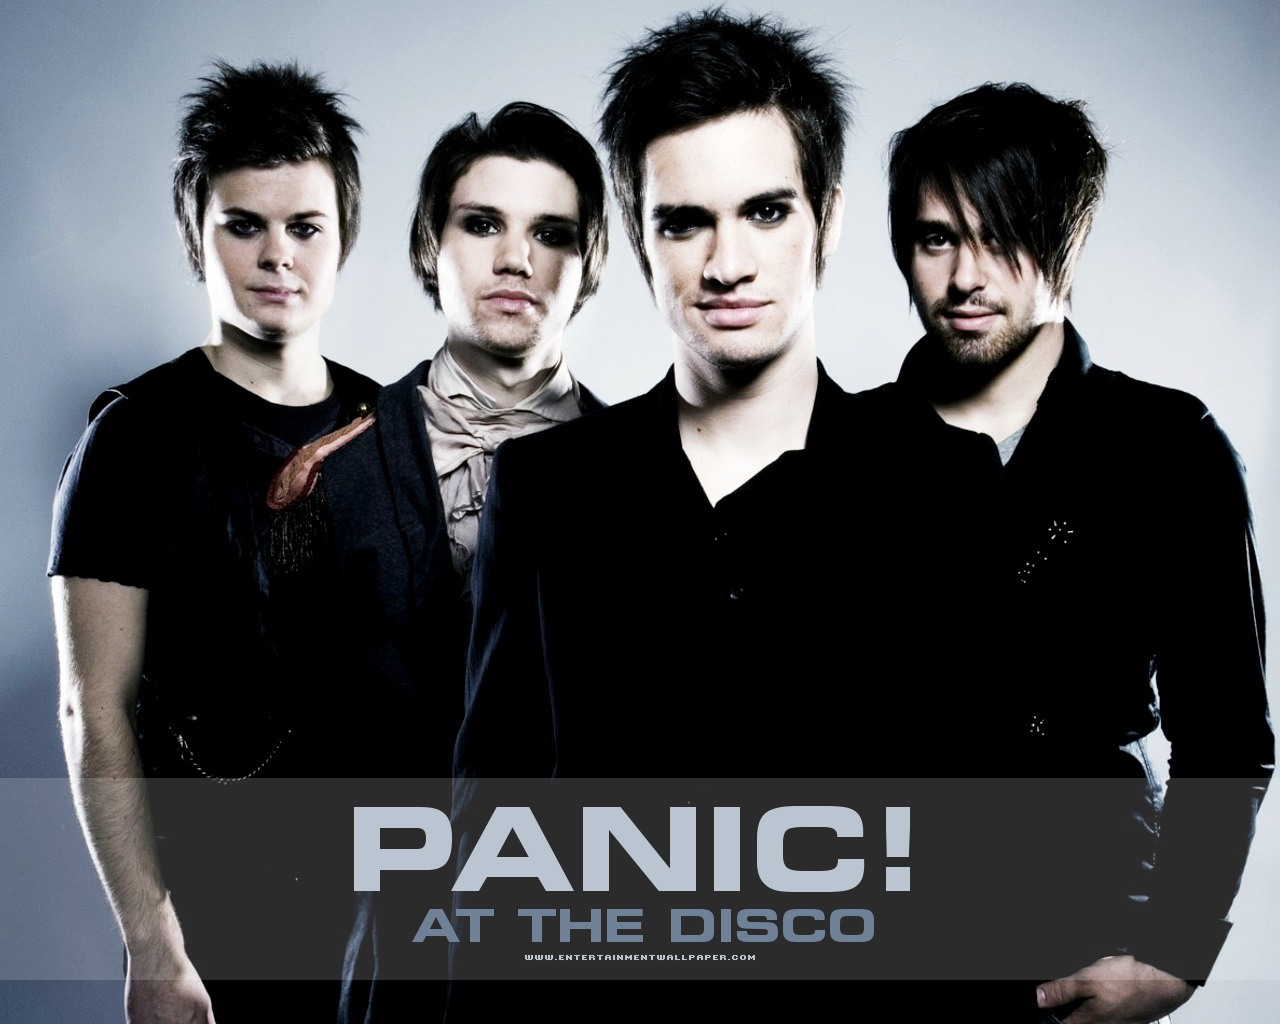 Panic at the disco album release date